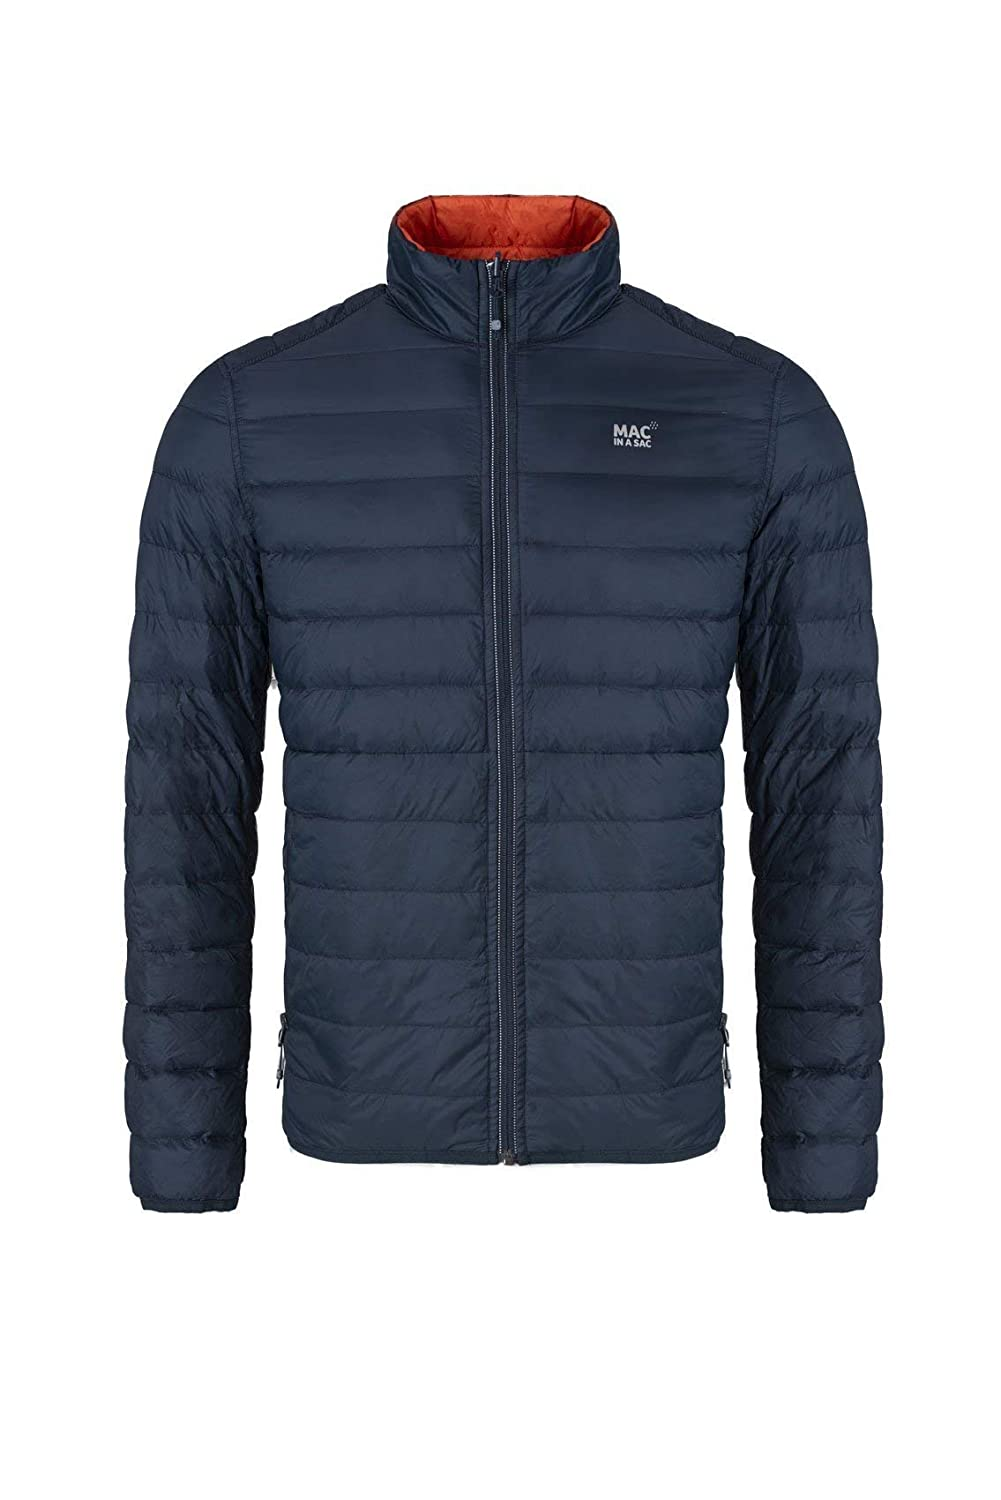 Mac in a Sac Herren Polar Daunenjacke